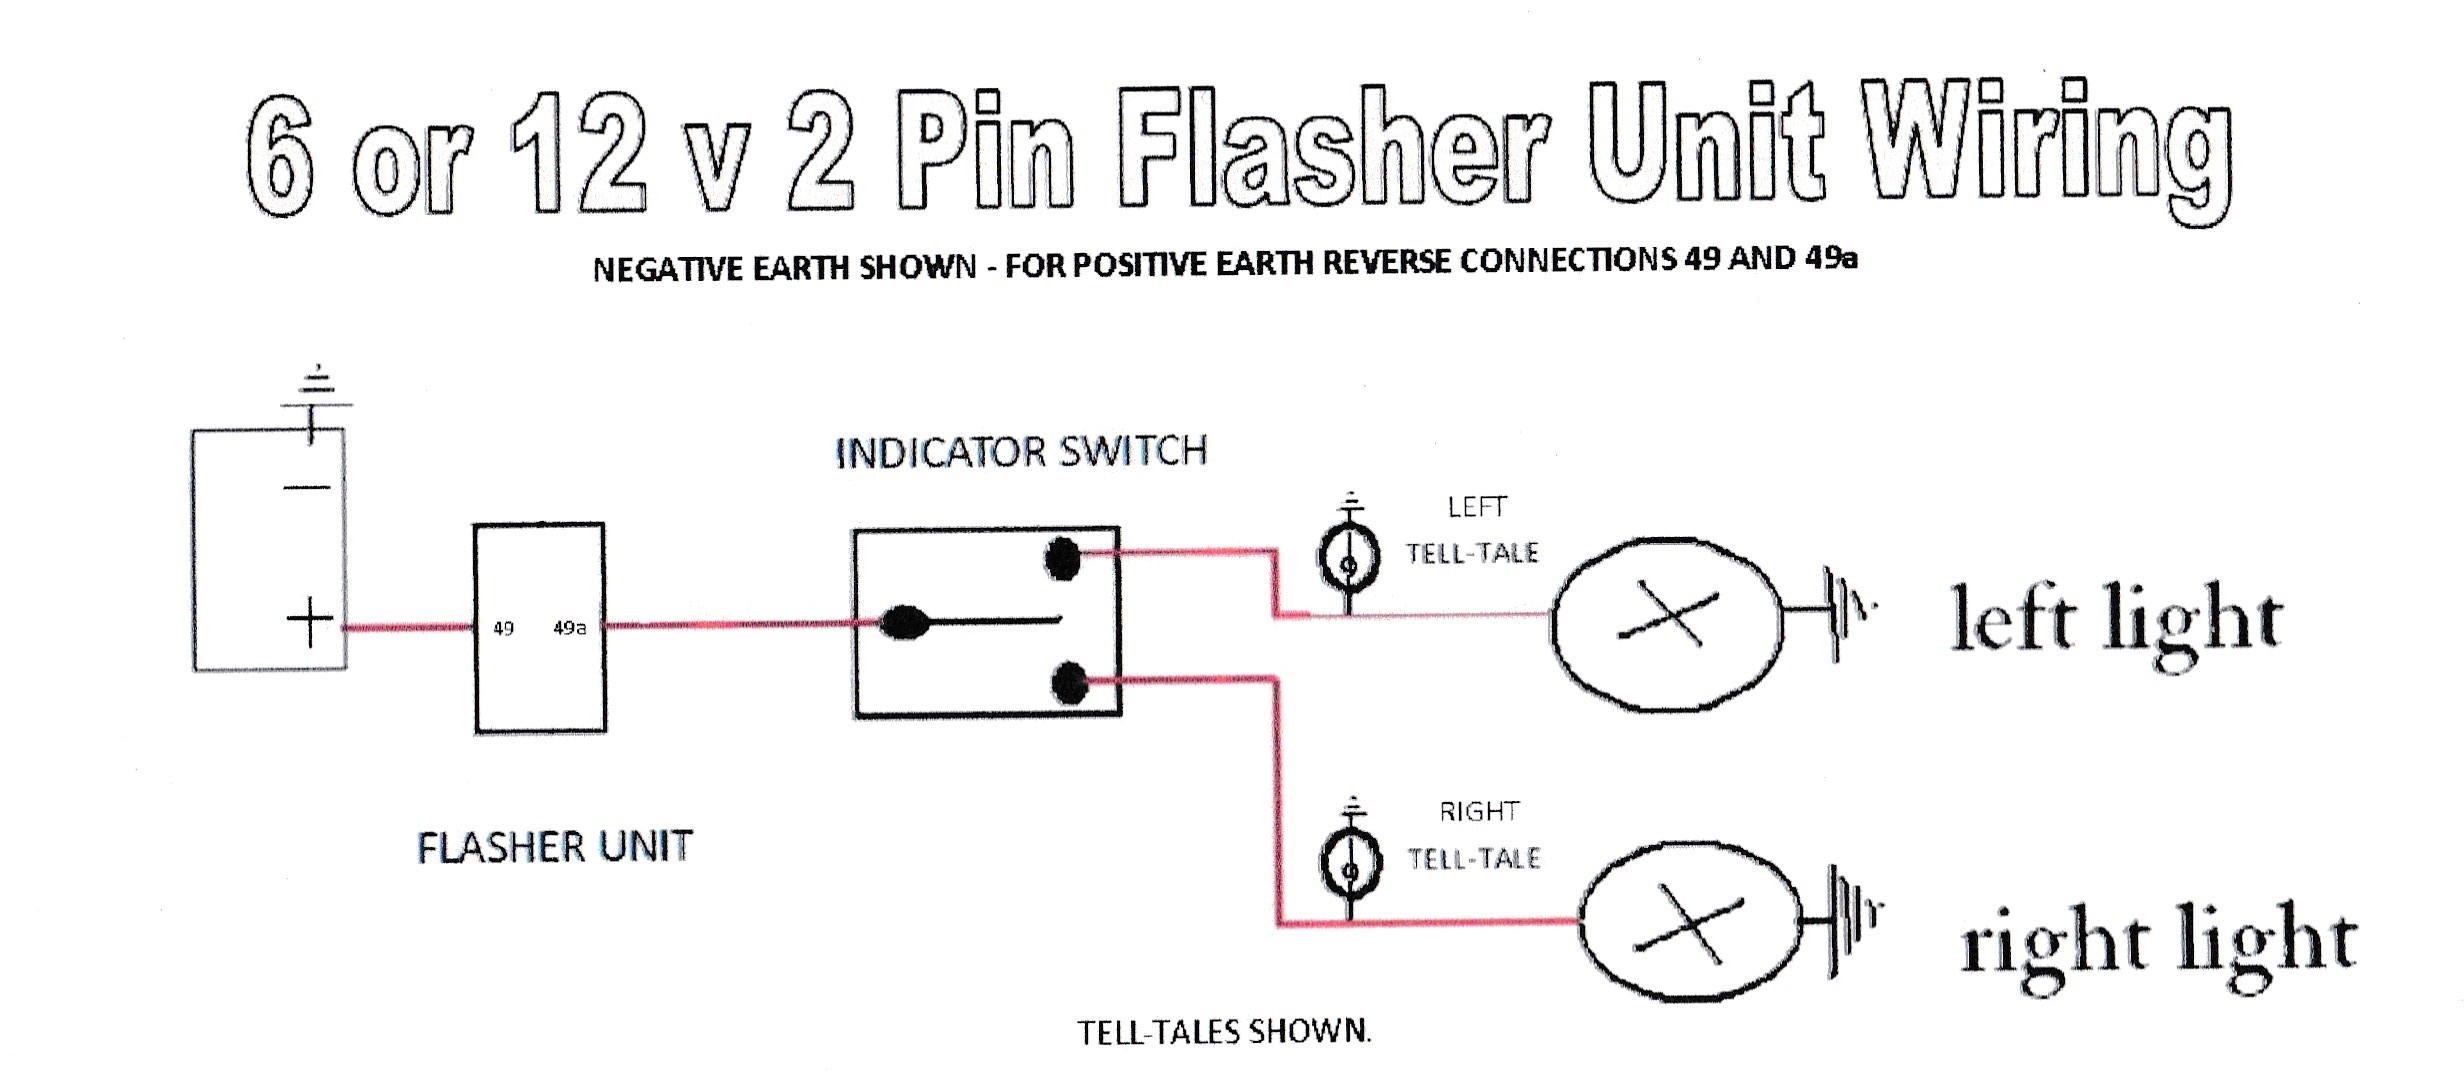 Wiring Circuit for A Two Pin 12volt Flasher Unit 3 Wire Led Light Wiring Diagram Wiring Diagram Schemas Of Wiring Circuit for A Two Pin 12volt Flasher Unit